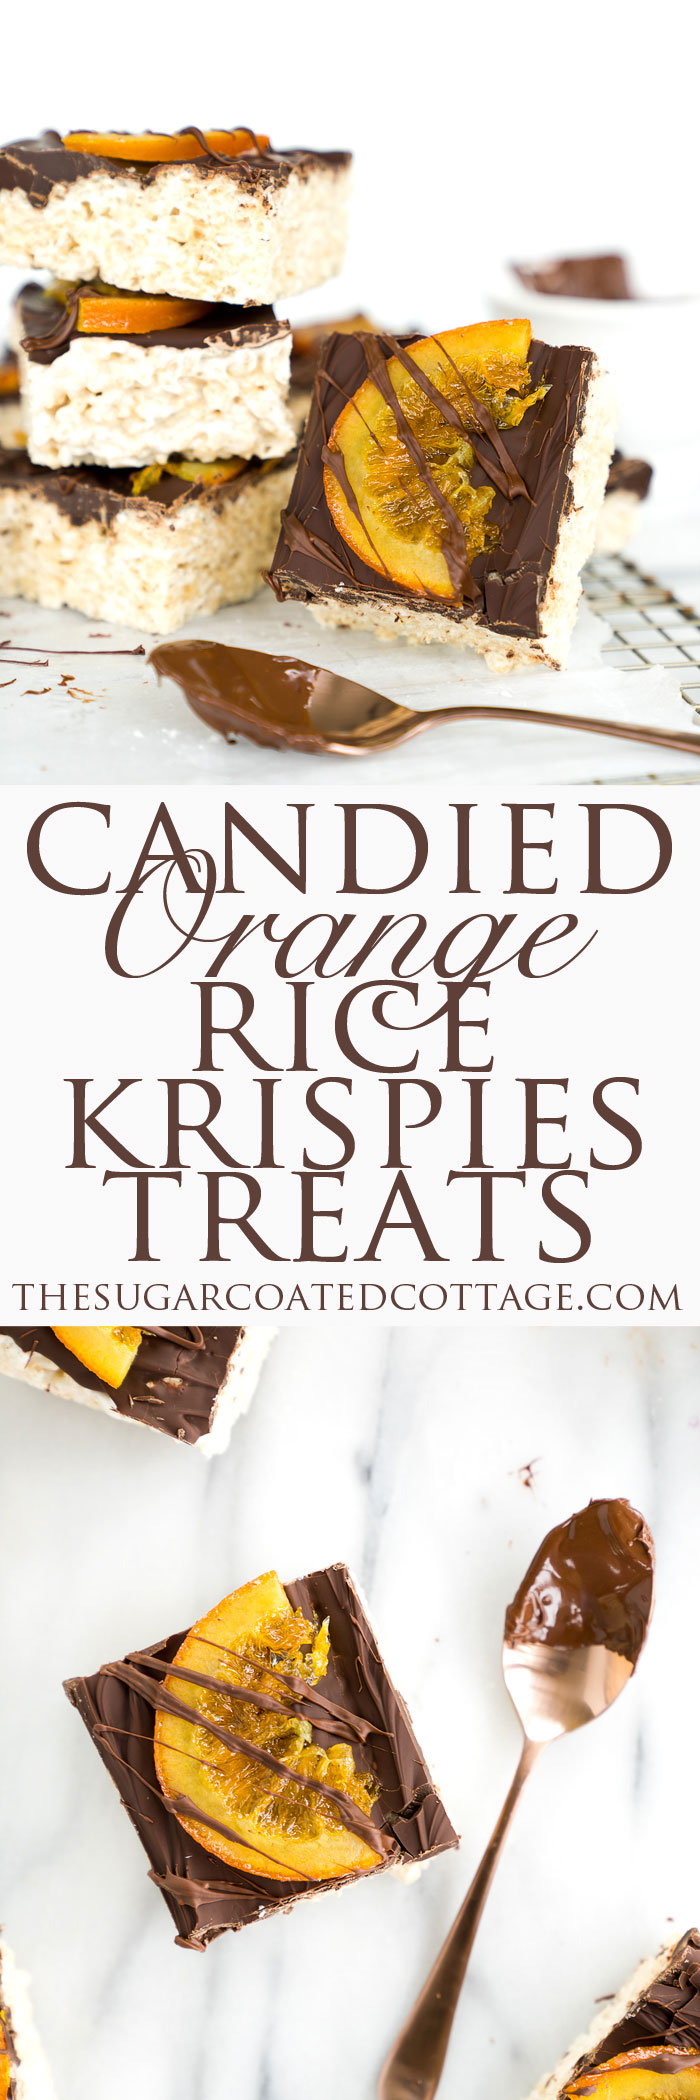 Candied Orange Chocolate Rice Krispies Treats Recipe. Gooey, marshmallowy Rice Krispies Treats smothered in a coating of chocolate and adorned by slices of candied oranges. There's no other way to eat a childhood classic. | thesugarcoatedcottage.com | #ricekrispiestreats #barcookies #recipe #dessert